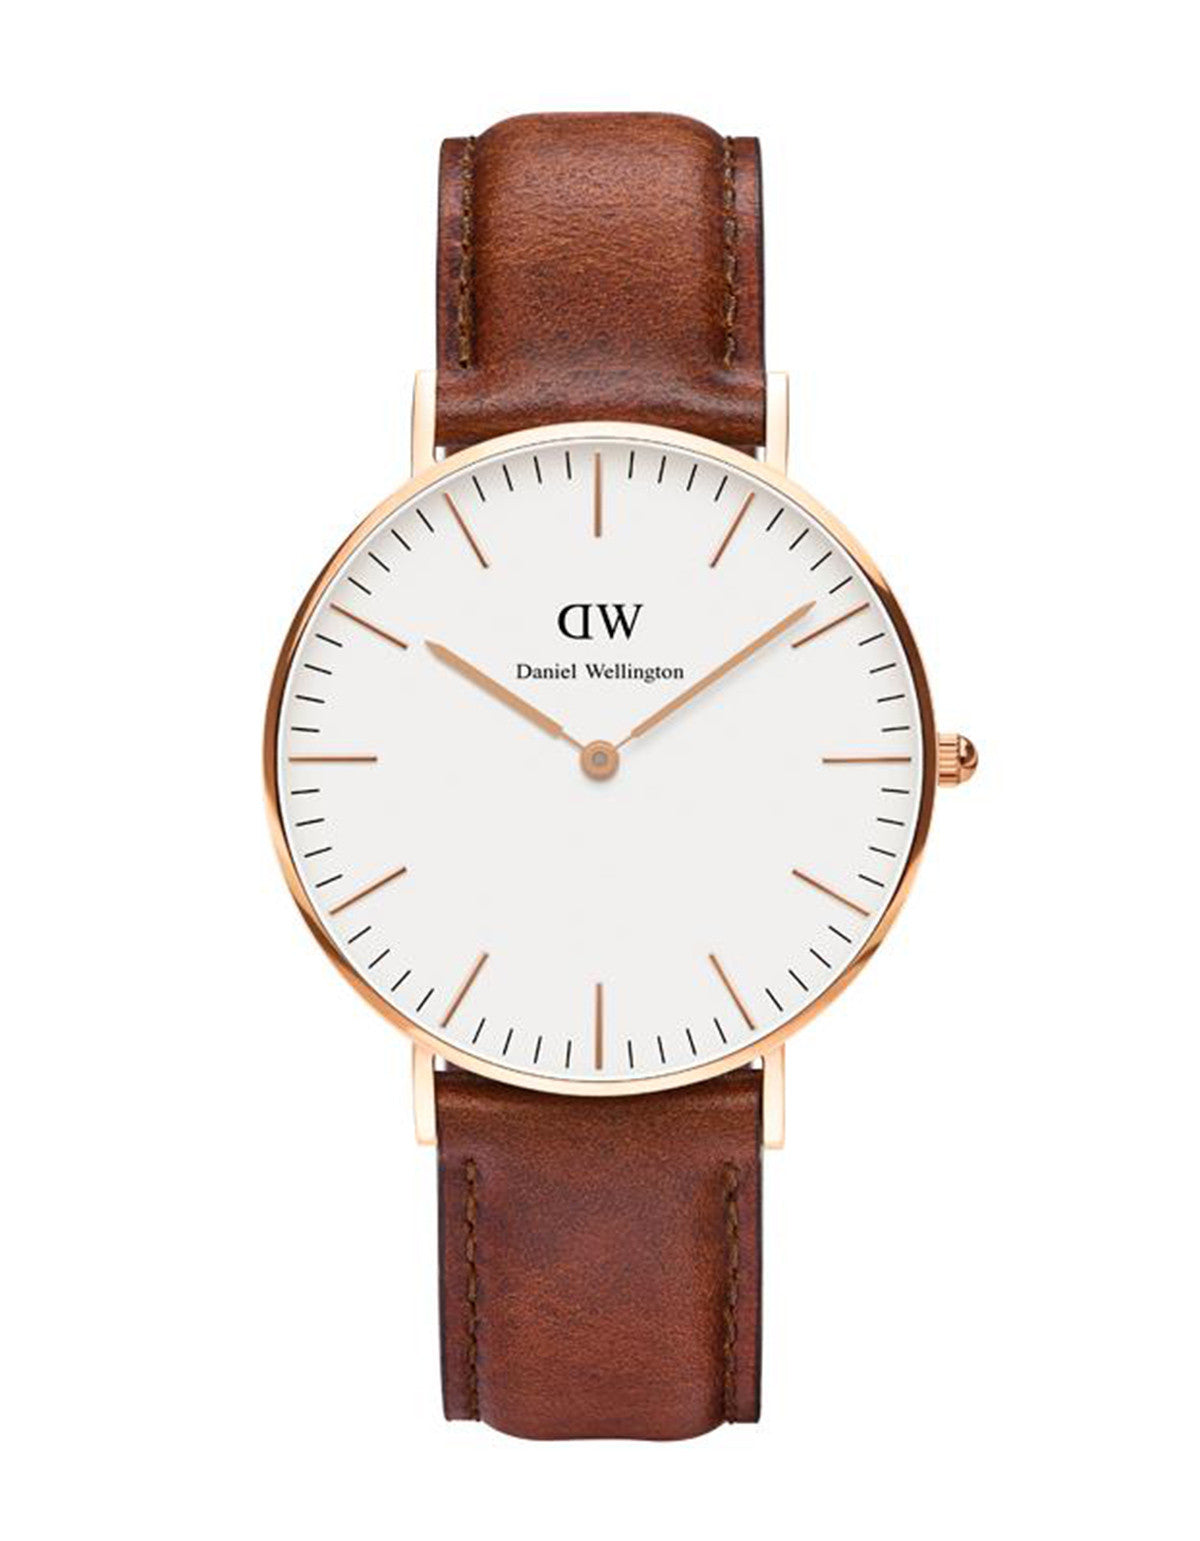 Daniel Wellington Womens St. Andrews Watch Rose Gold 36mm - Still Life - 1